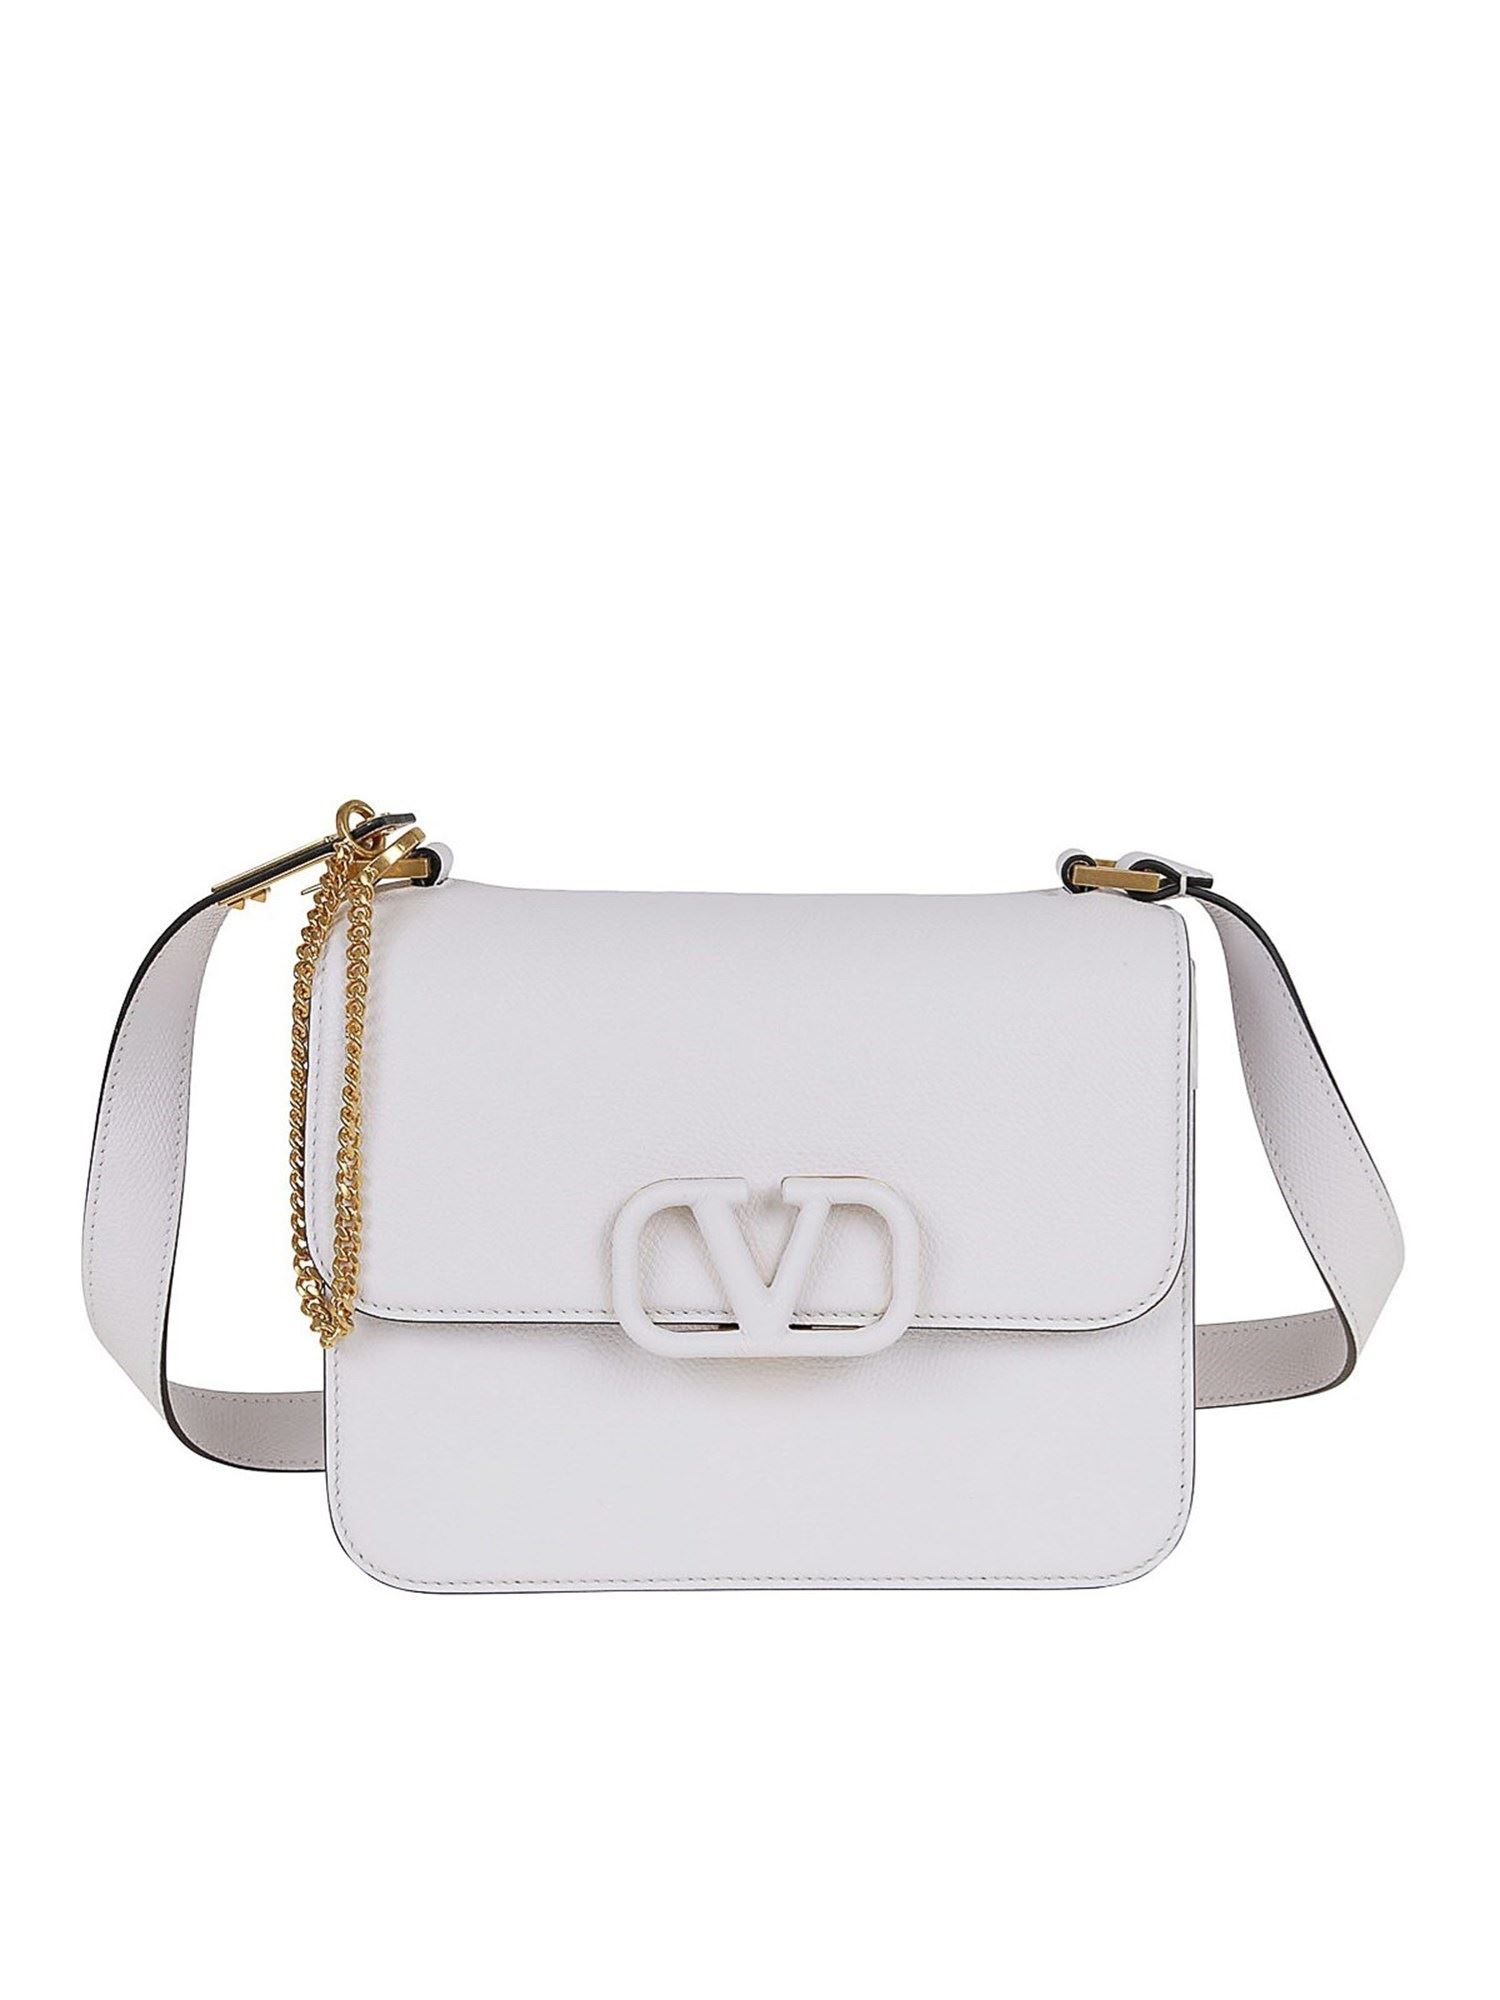 VALENTINO VSLING BAG IN WHITE